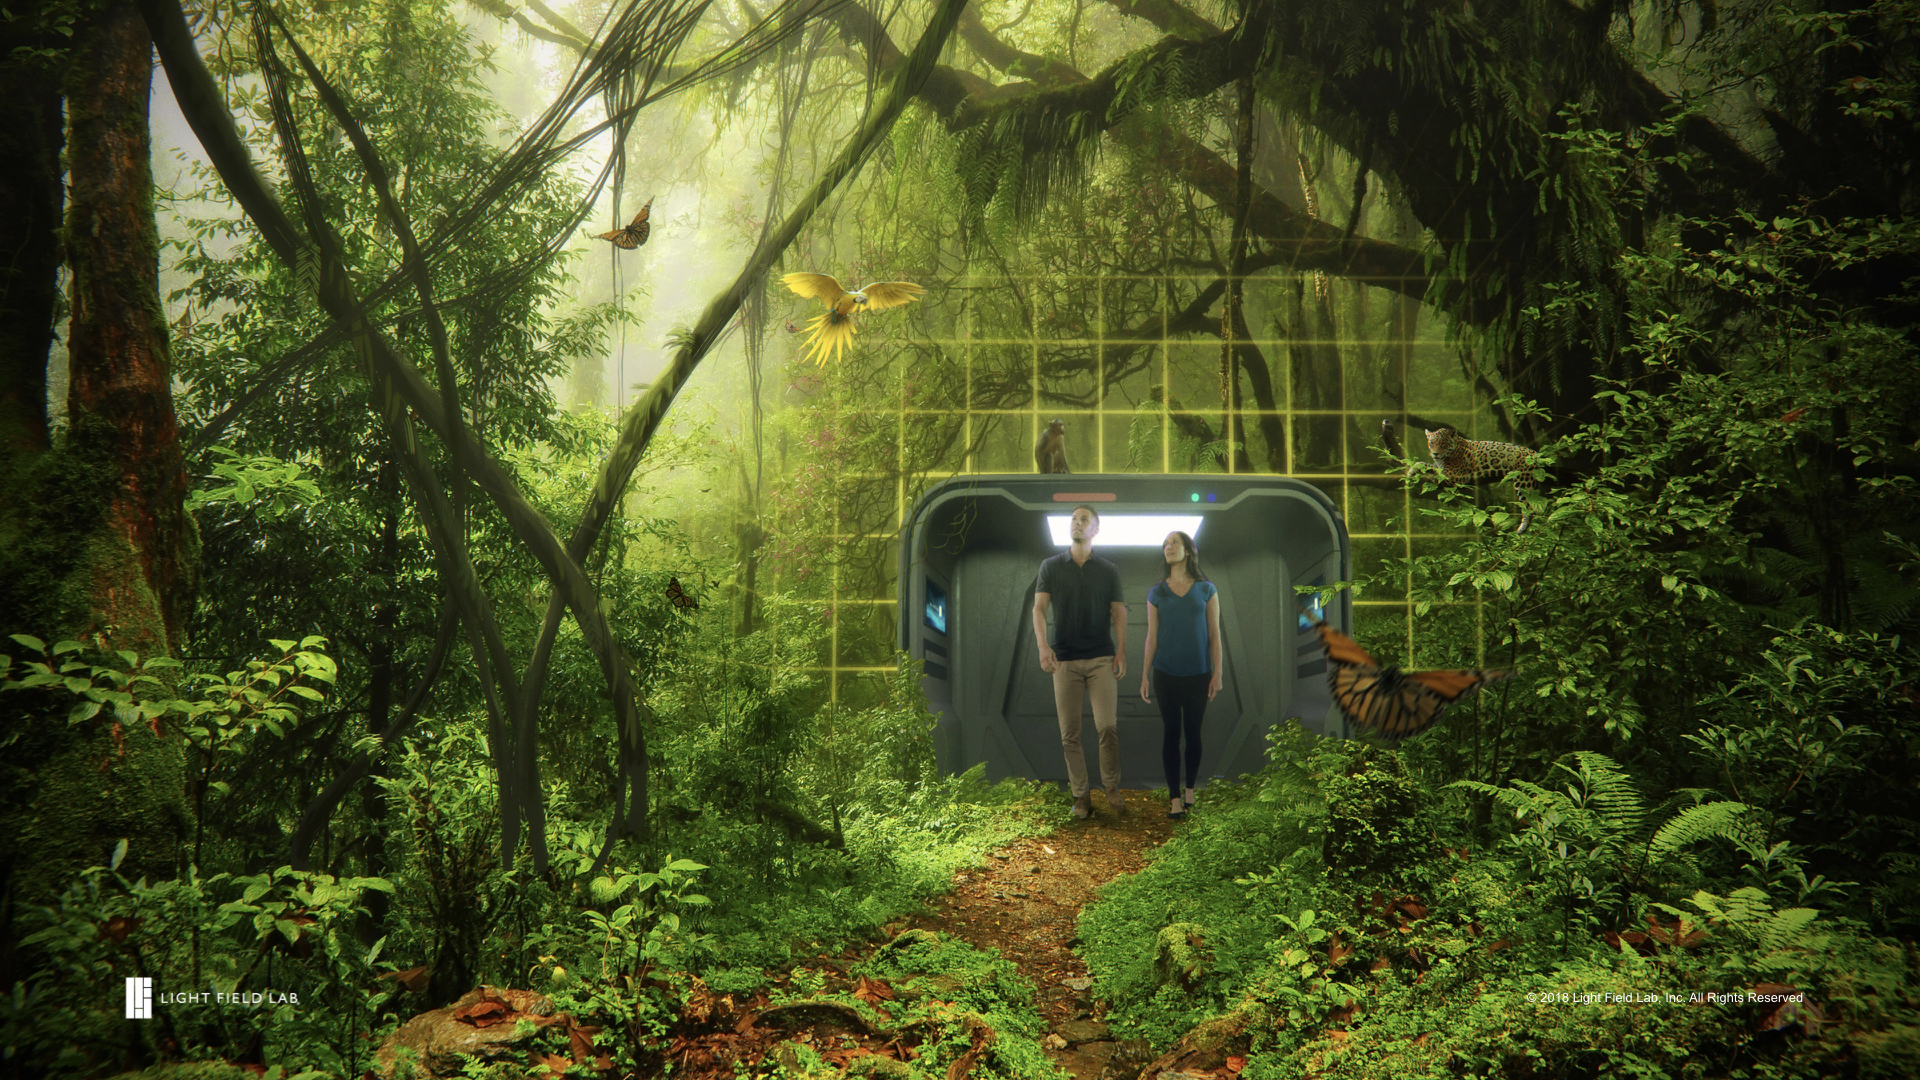 Future vision concept art of room scale holographic display from Light Field Lab, Inc.